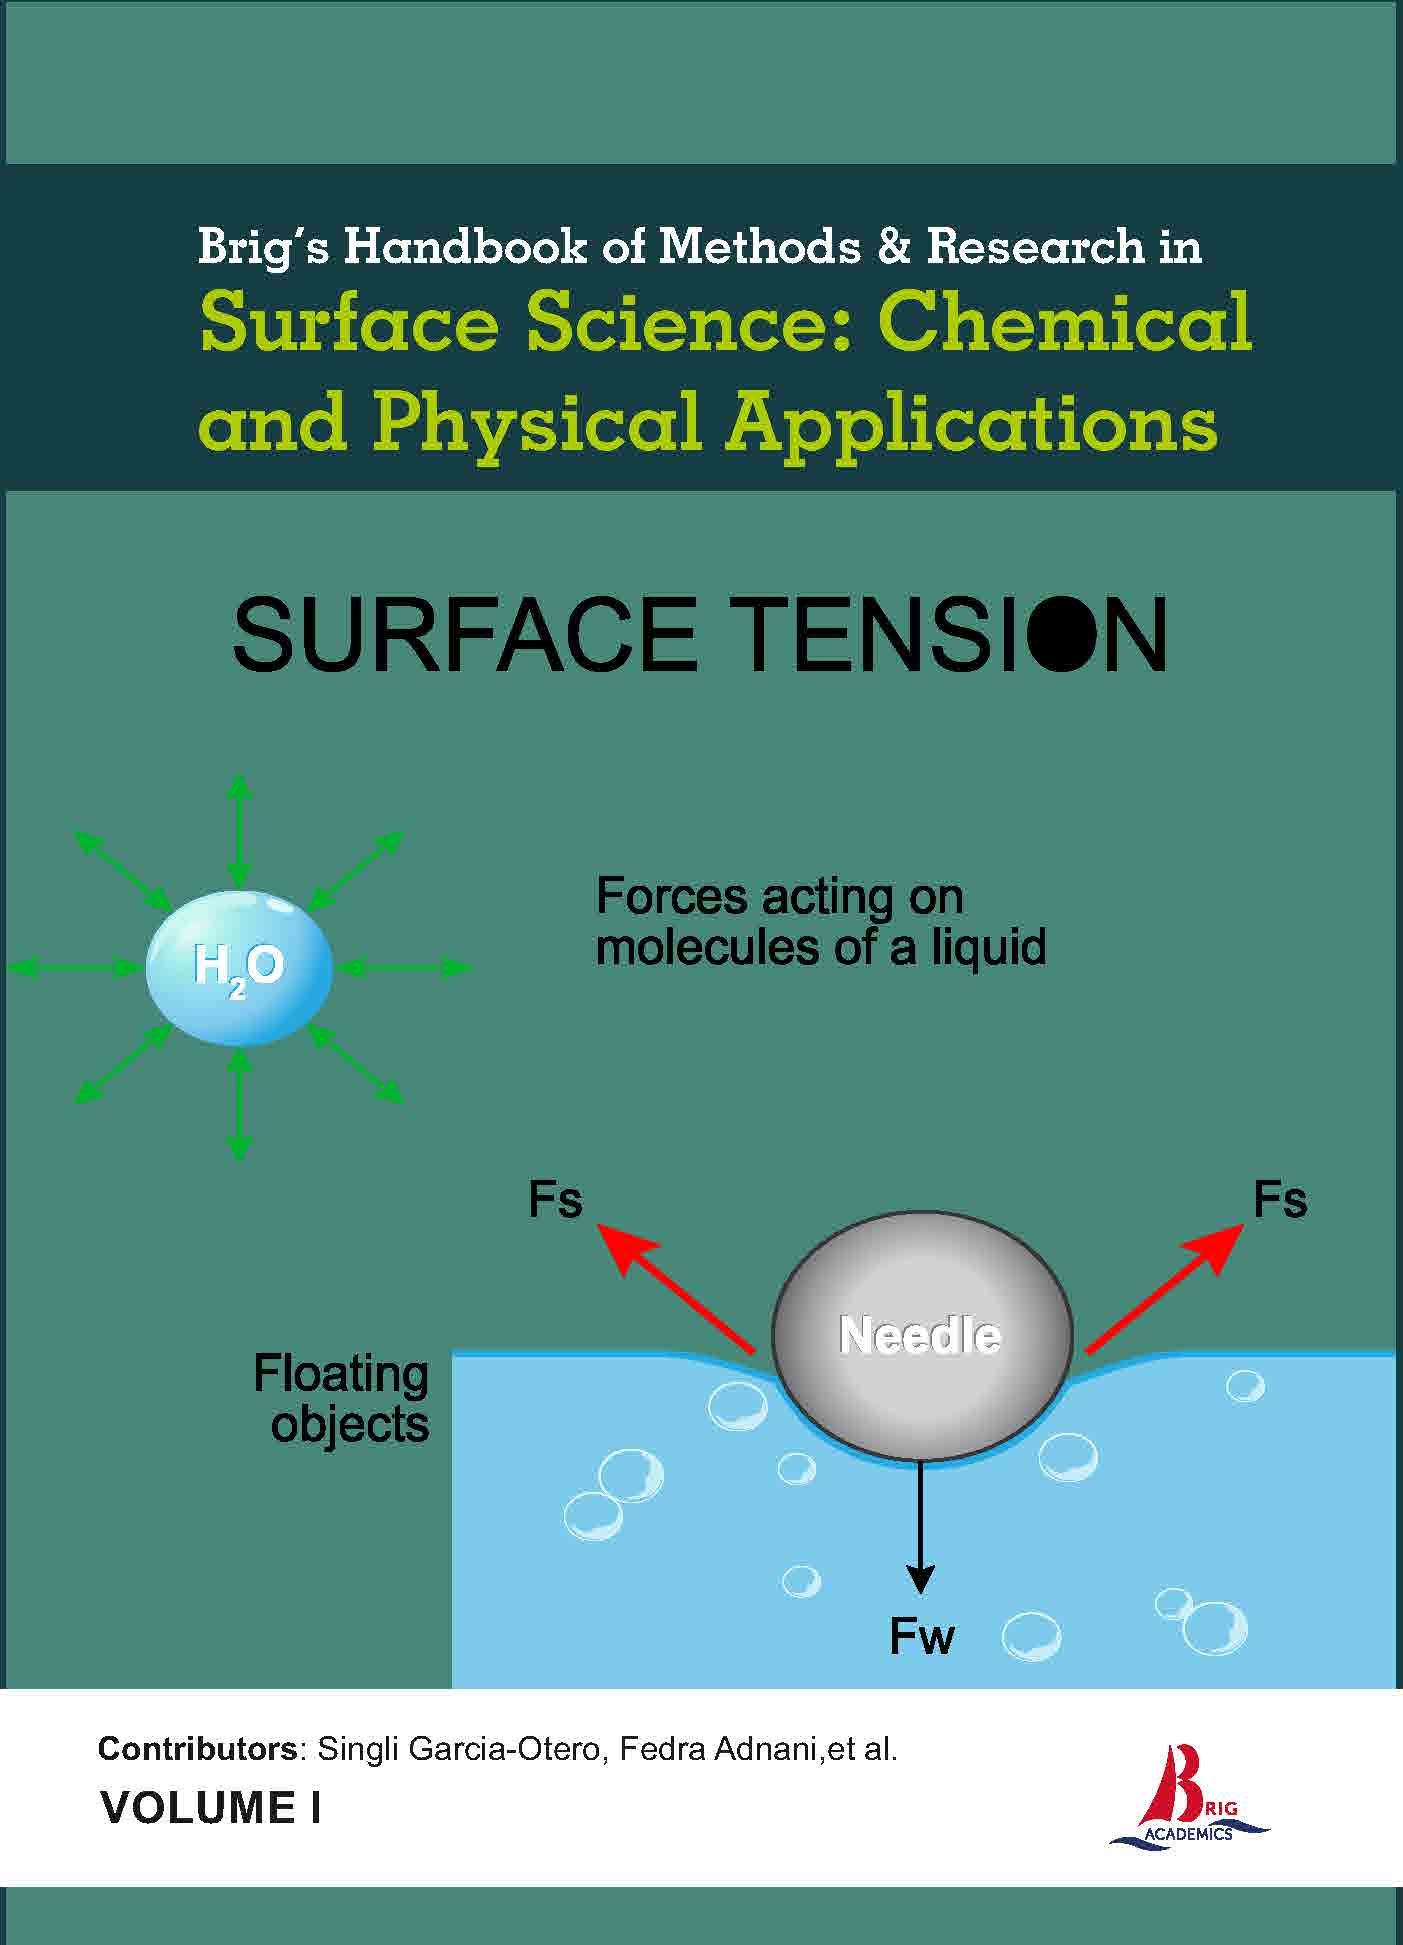 Brig's Handbook of Methods & Research in Surface Science: Chemical and Physical Applications